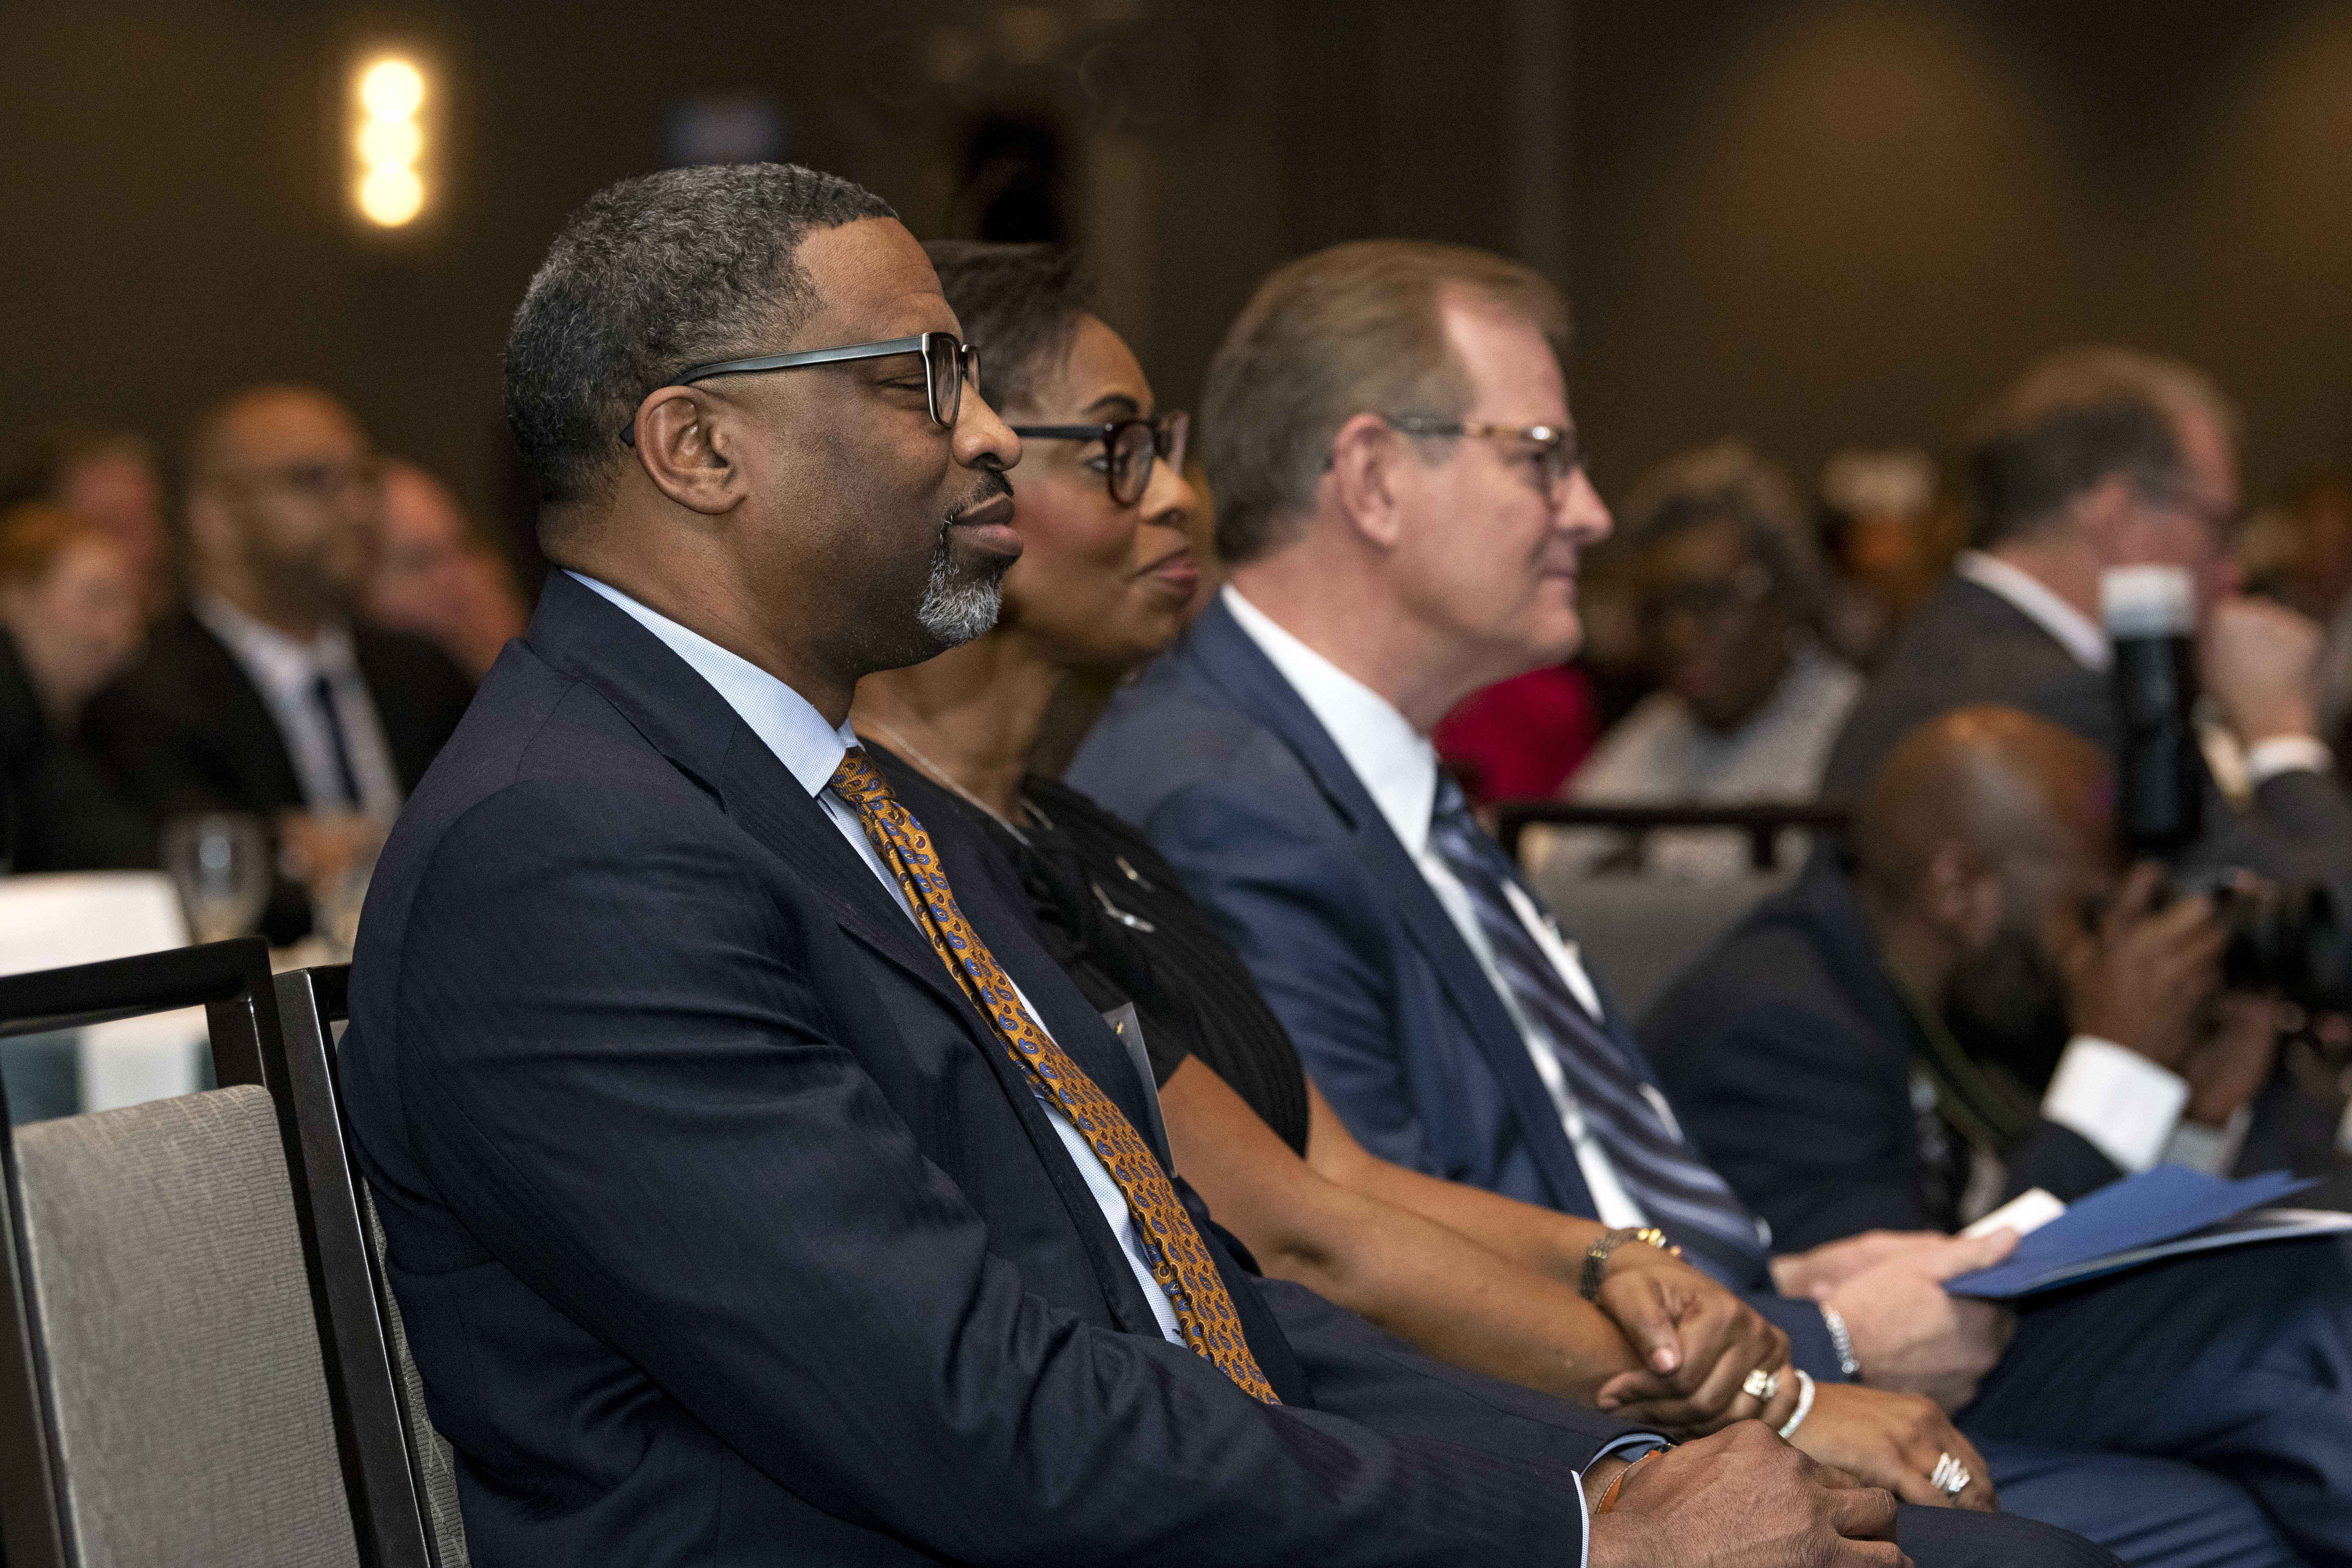 Elder Gary E. Stevenson of the Quorum of the Twelve Apostles with NAACP President and CEO Derrick Johnson and Karen Boykin-Towns, NAACP vice chair, at the BYU Management Society event in Washington, D.C., May 11, 2019.